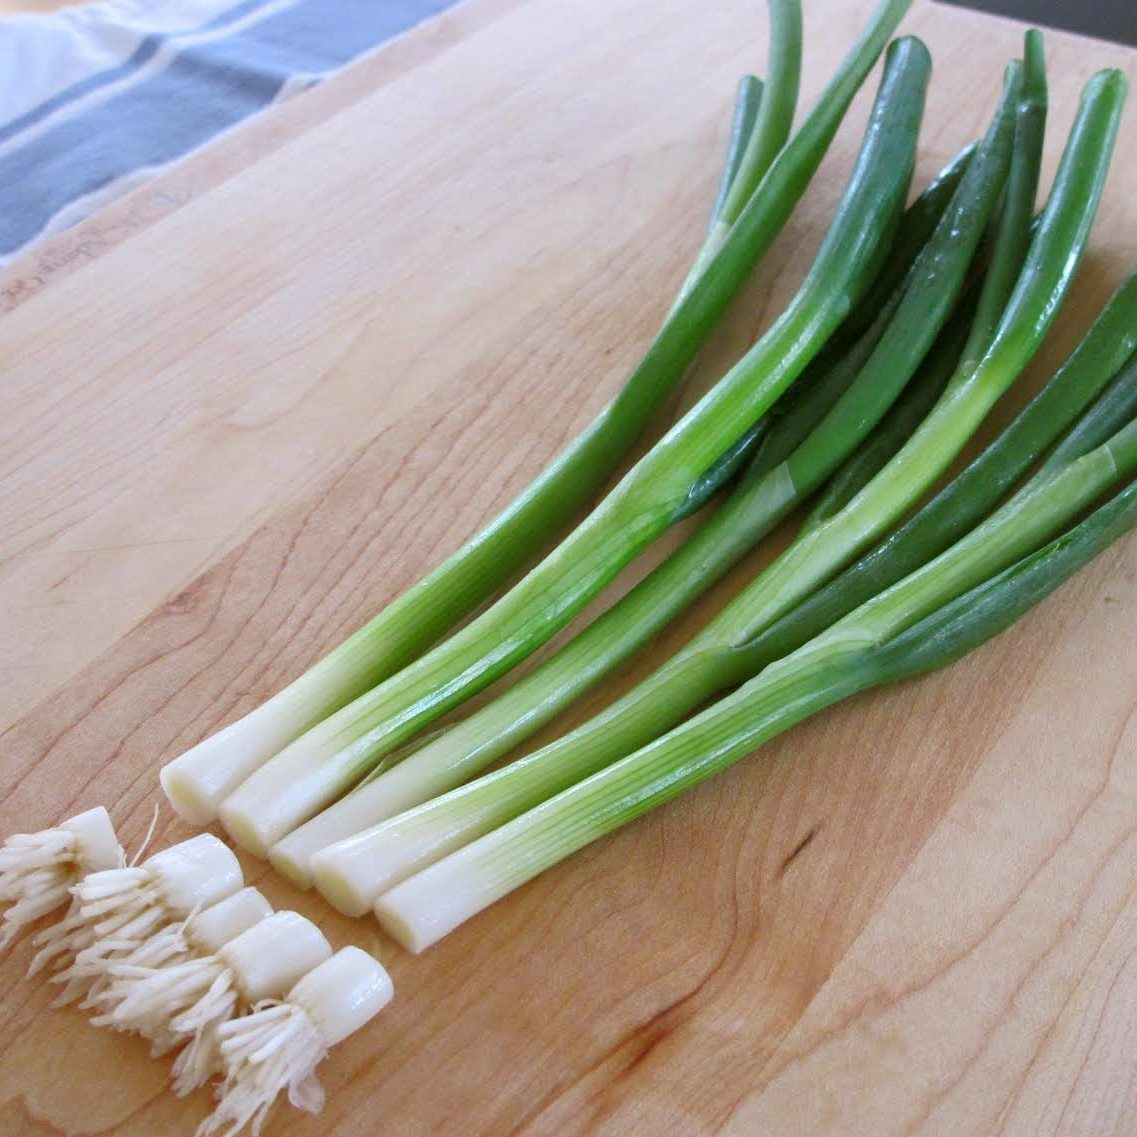 Best Plants For Indoor Vegetable Garden | Growing Green Onions/Scallions